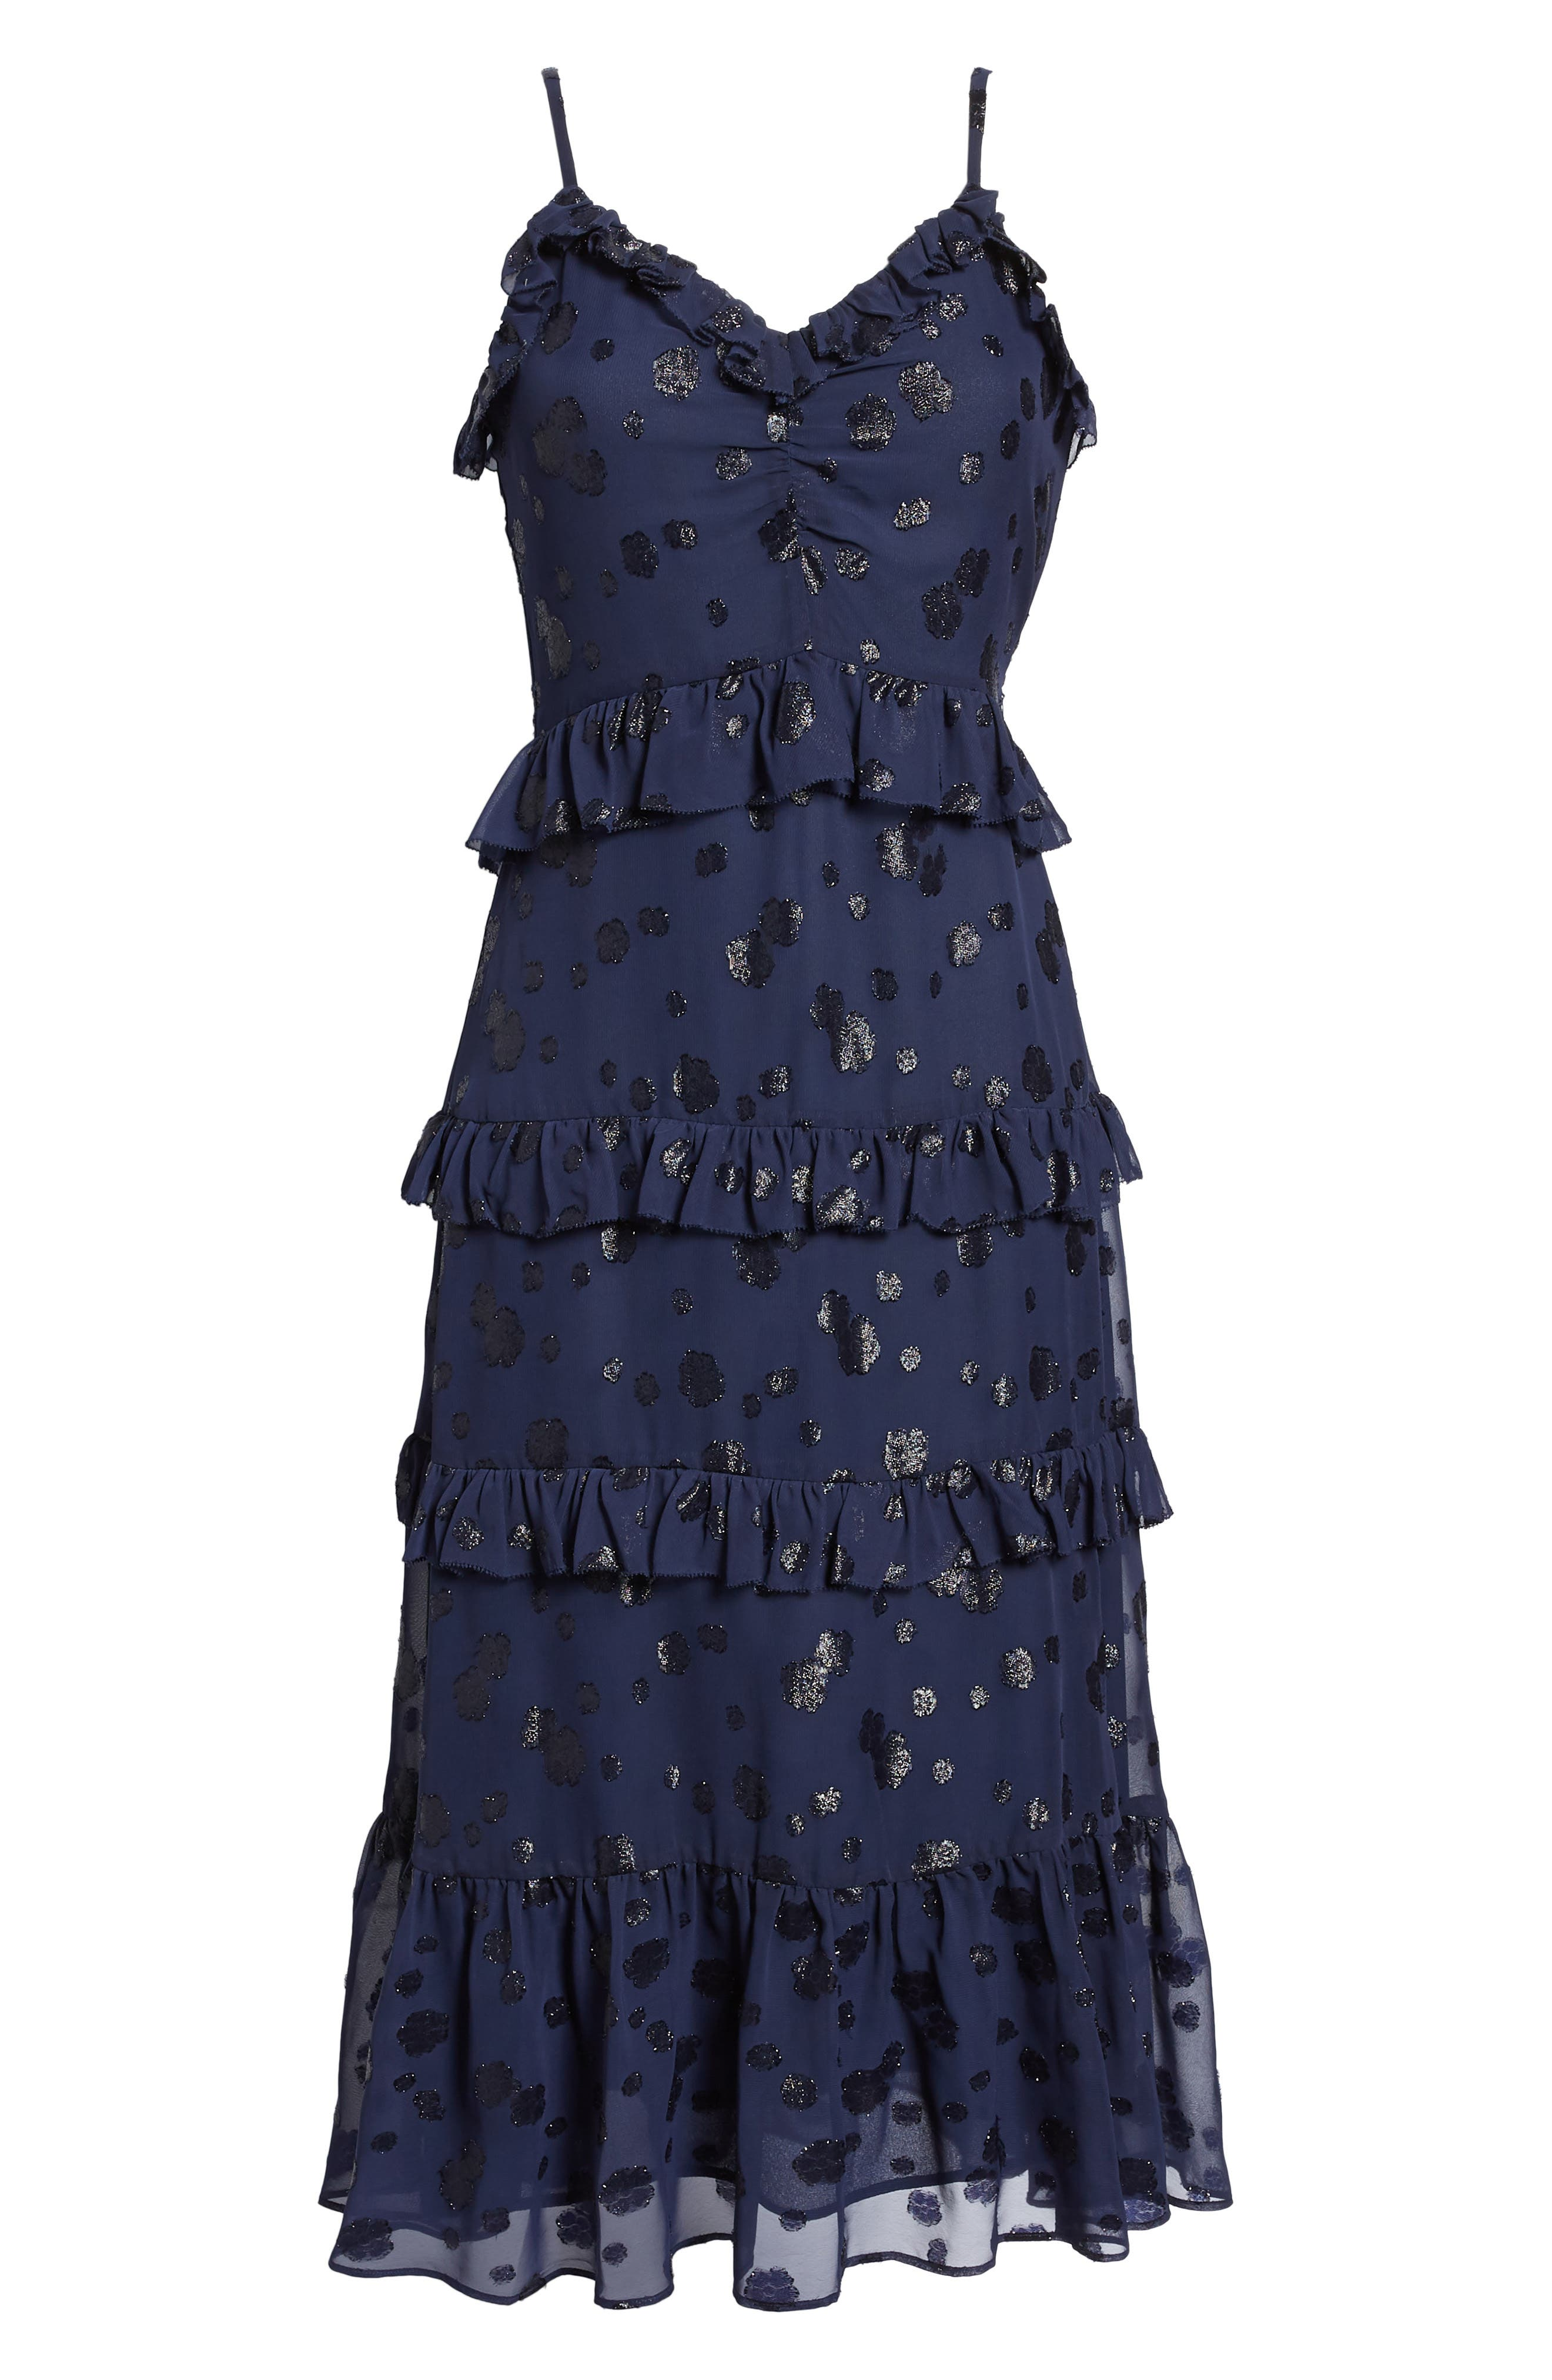 Tiered Ruffle Dress,                             Alternate thumbnail 6, color,                             456